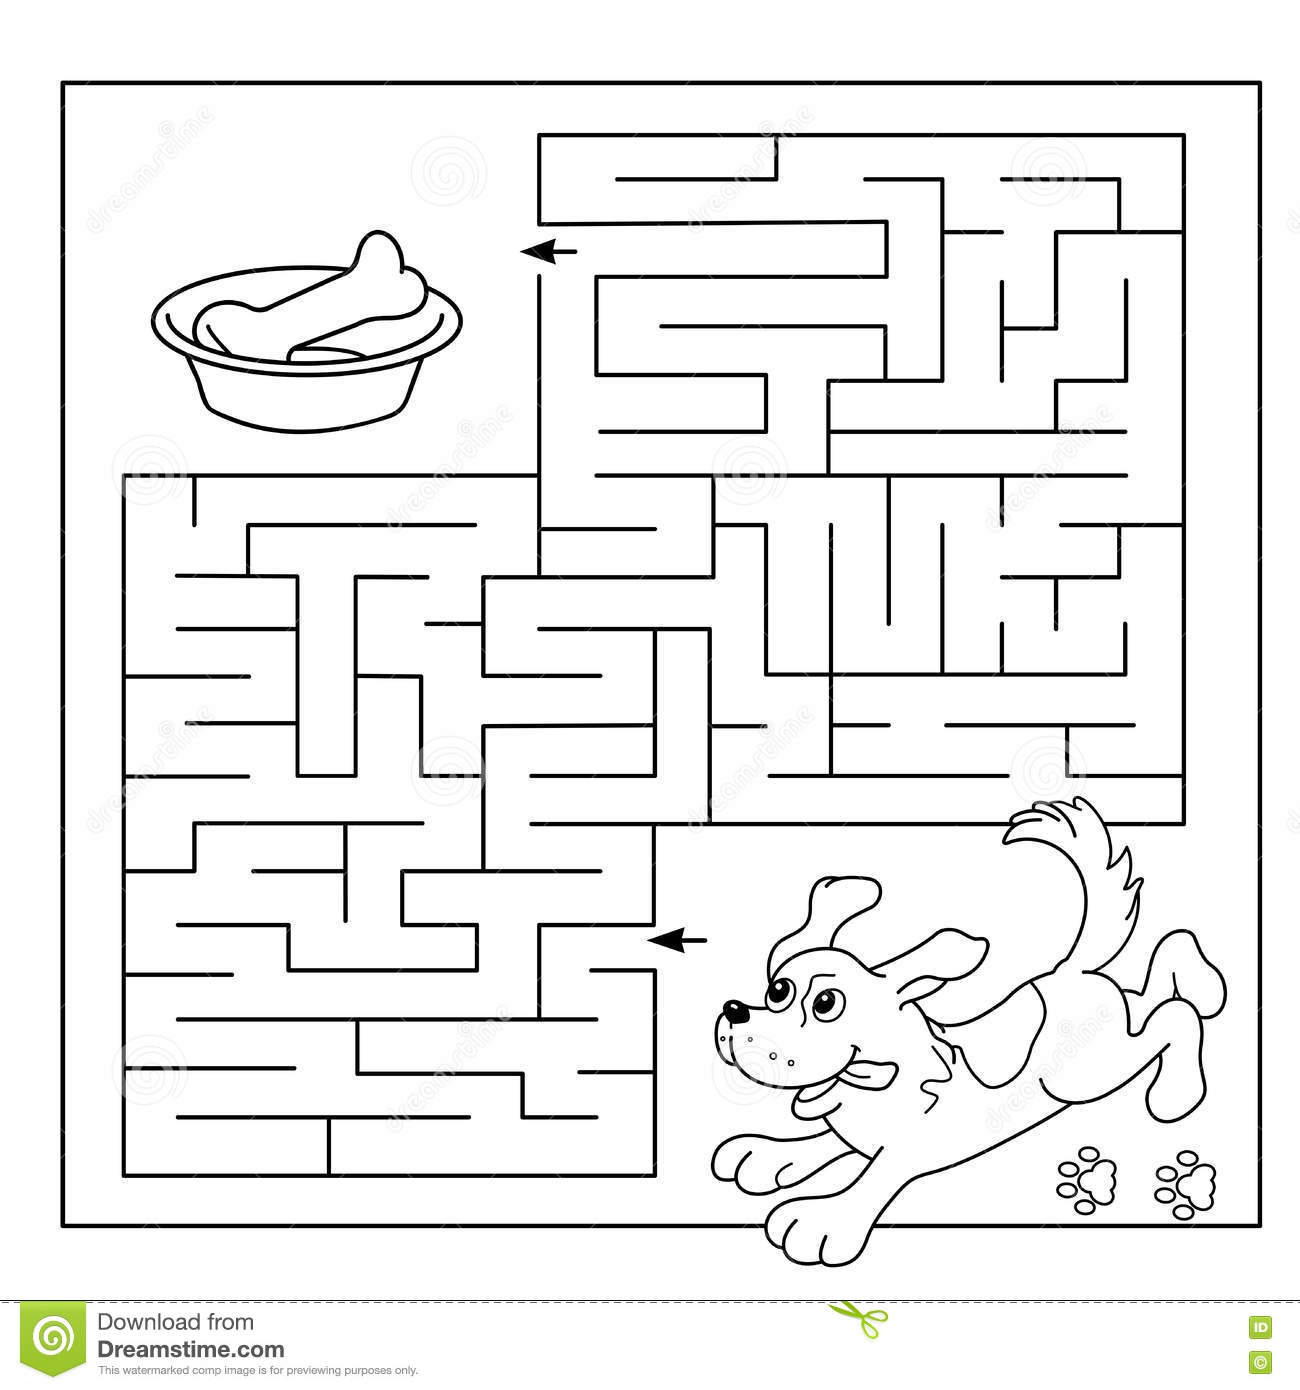 Childrens educational coloring activity book - Royalty Free Vector Download Education Maze Or Labyrinth Game For Preschool Children Puzzle Coloring Page Outline Of